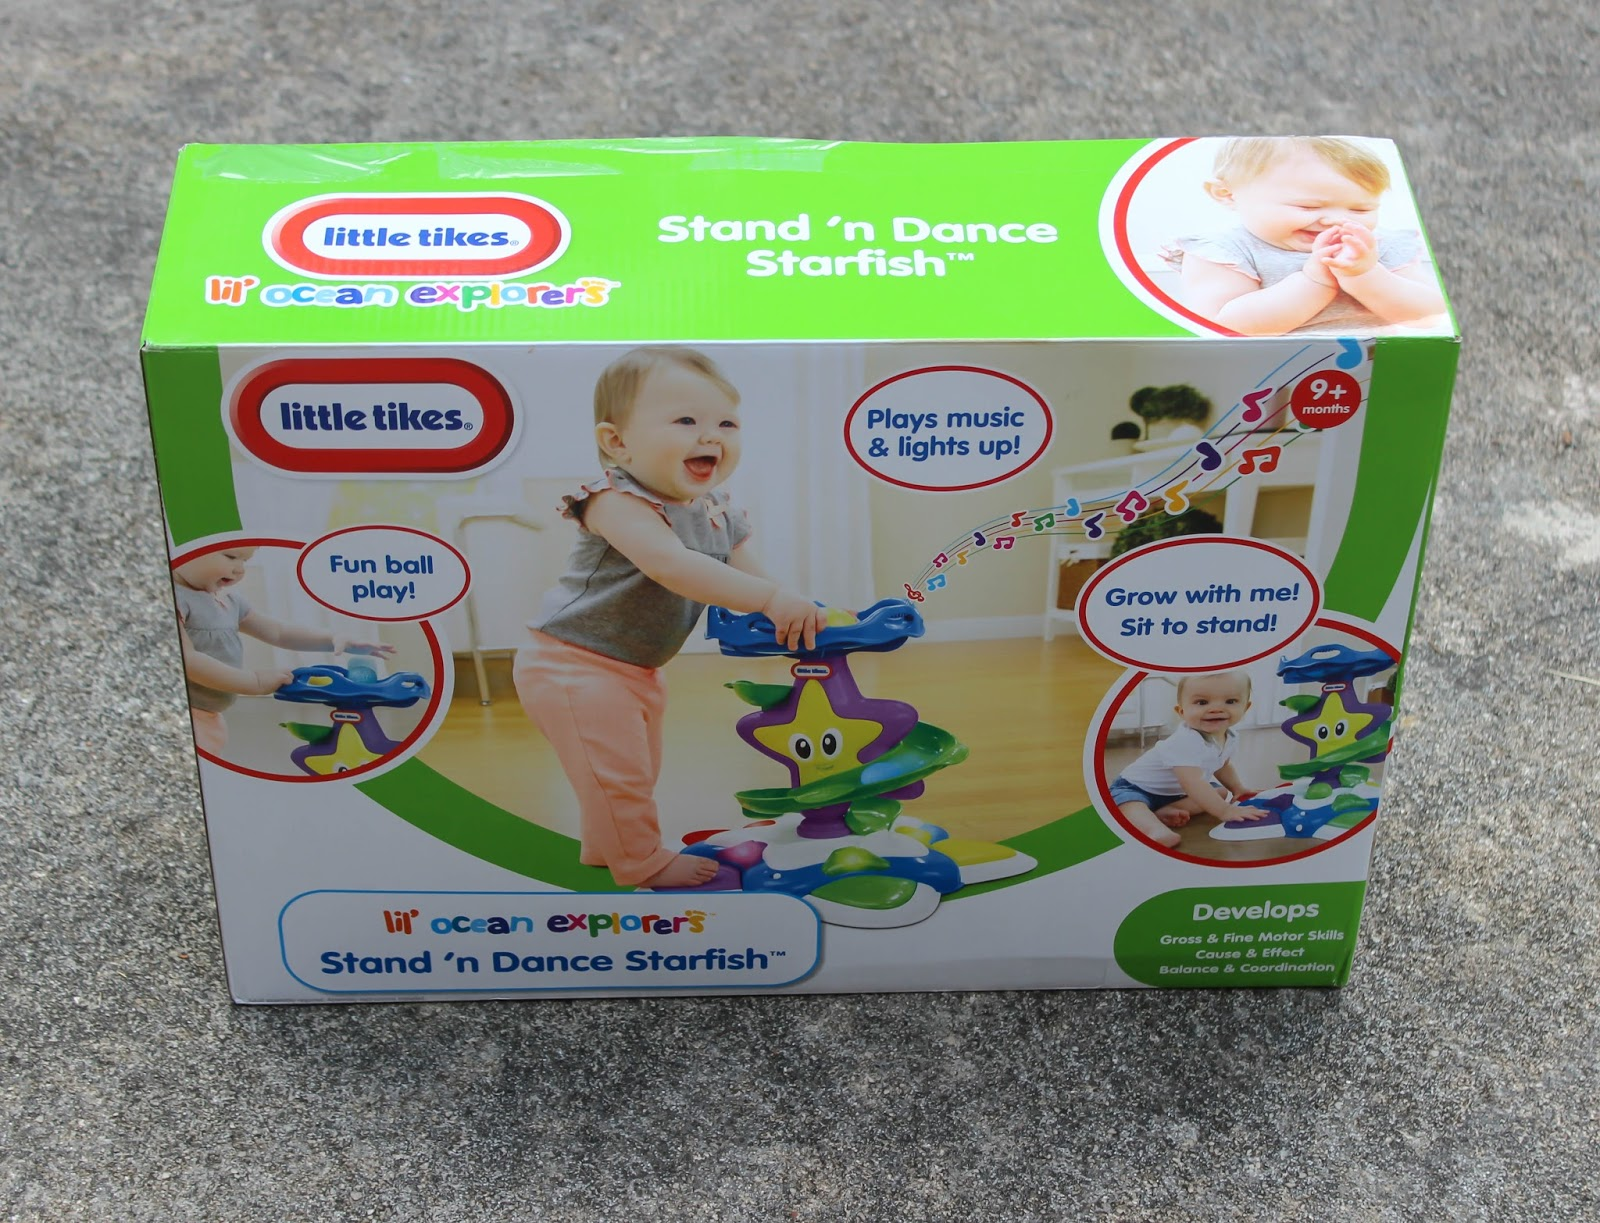 Toys for Toddlers Little Tikes Review Giveaway Casual Claire